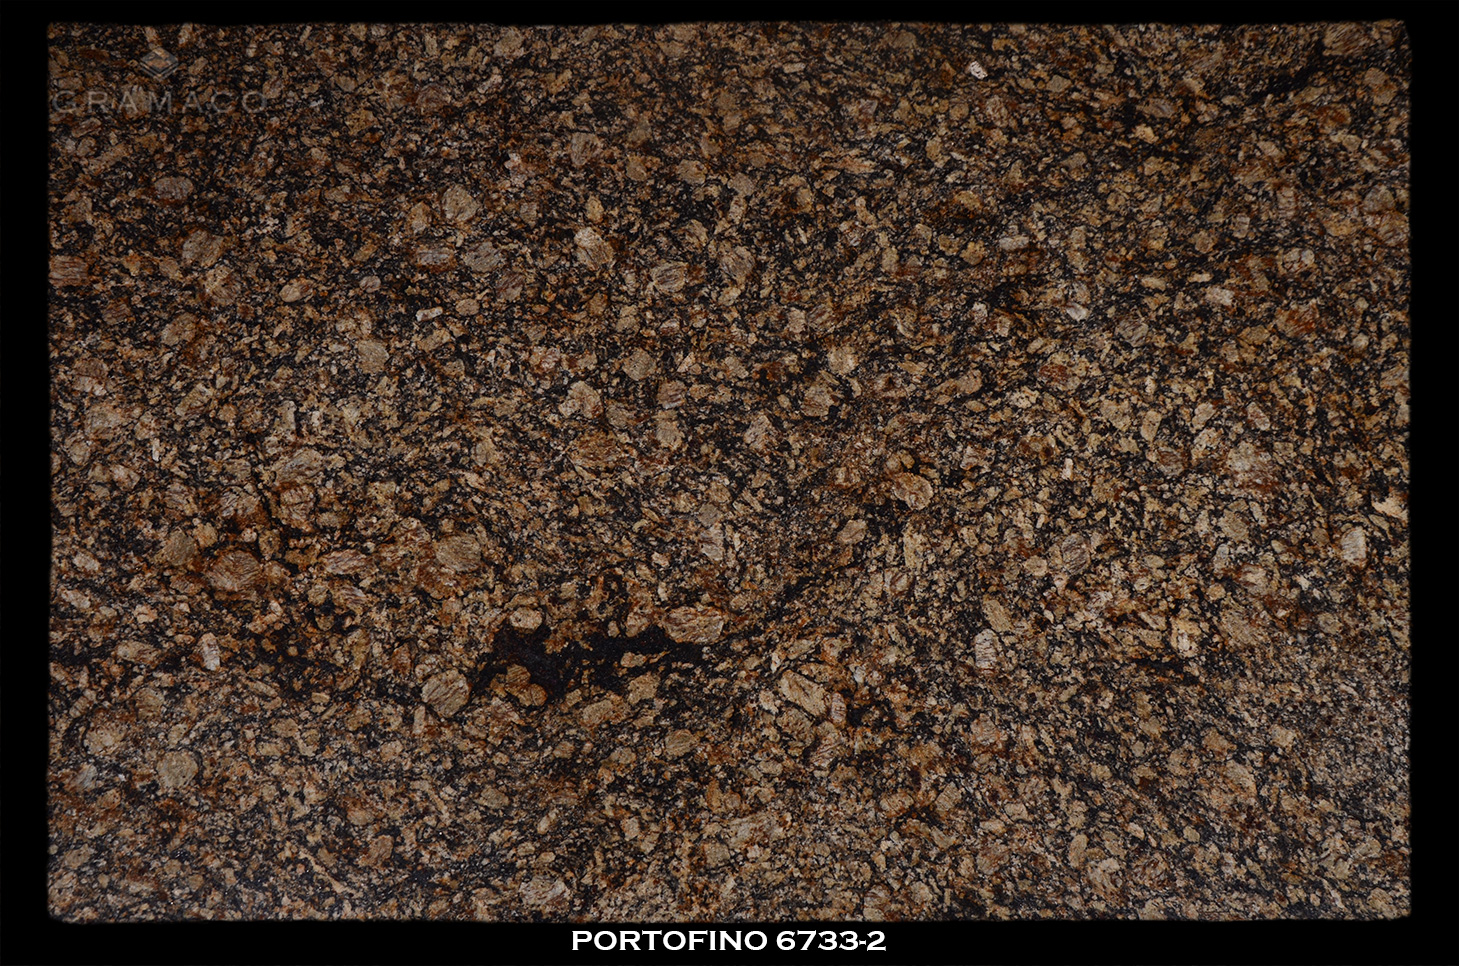 PORTOFINO-6733-2---FULL-SLAB-BLACK